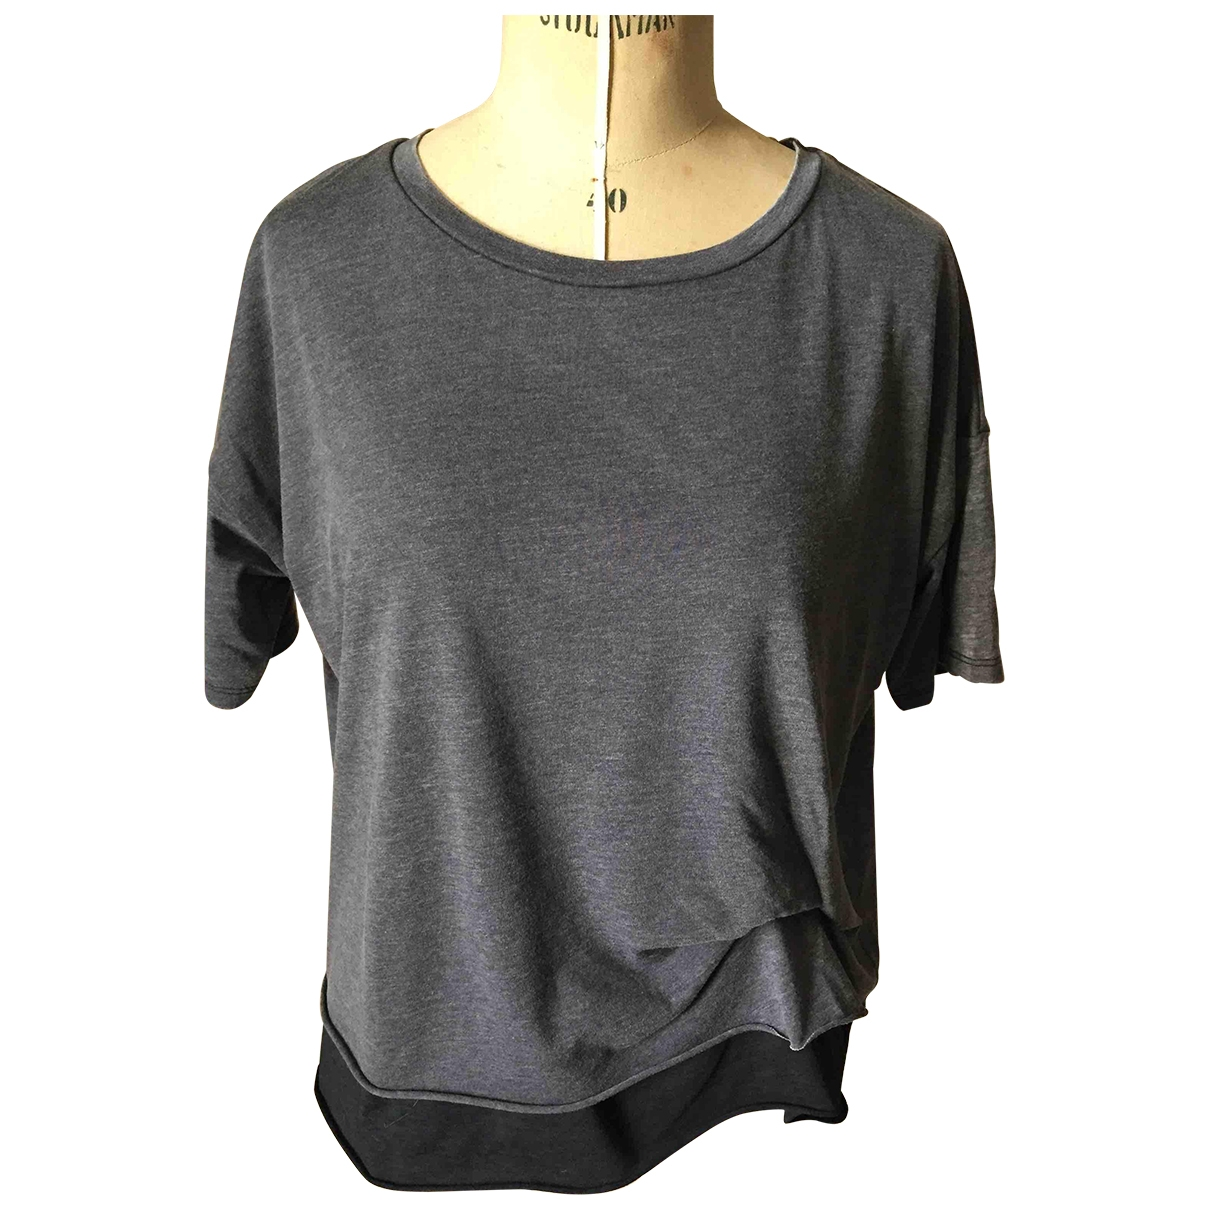 All Saints - Top   pour femme en coton - gris